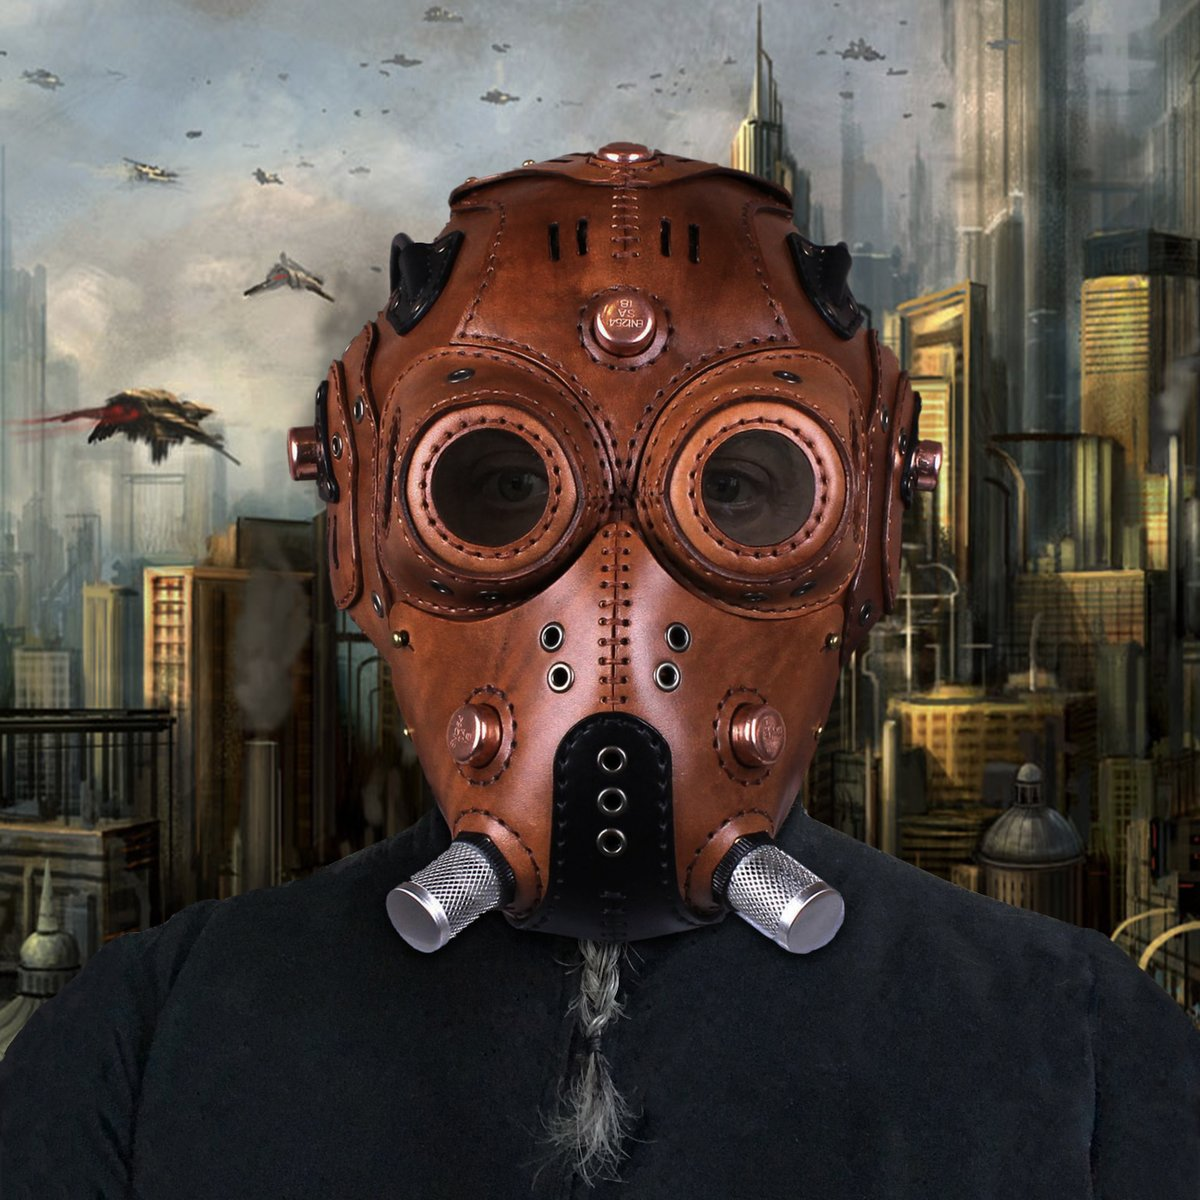 My Daily #Steampunk ⚙️ #Geek 🤓 #Space 🚀 #SamaCollection 🗞️ of Tweets ➡️ @pou3do @gasmaskun ⭐ Feat. @mazzageo ➡️ View More Selections 👉 https://t.co/iLWqTUIbYx